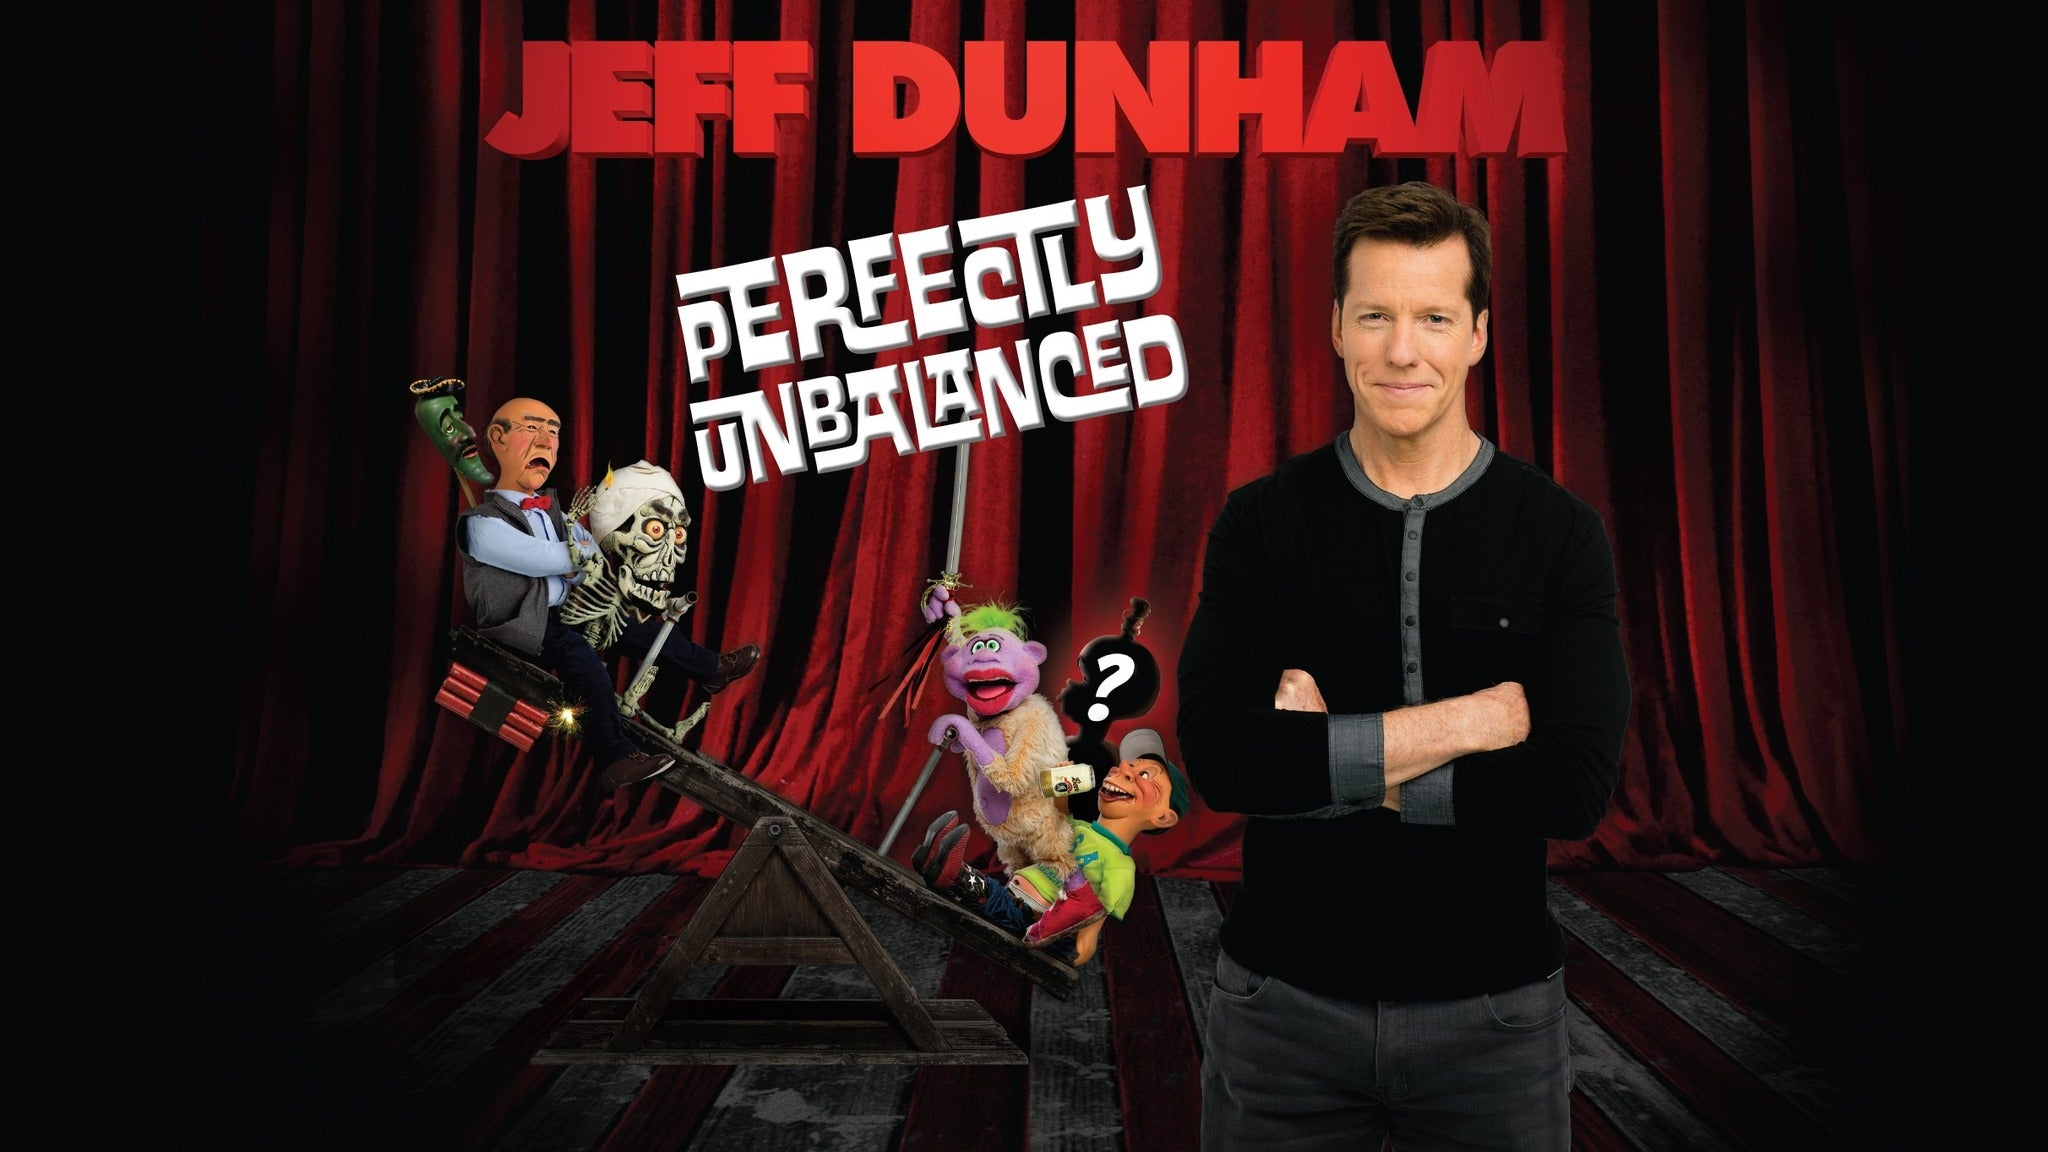 Jeff Dunham: Perfectly Unbalanced